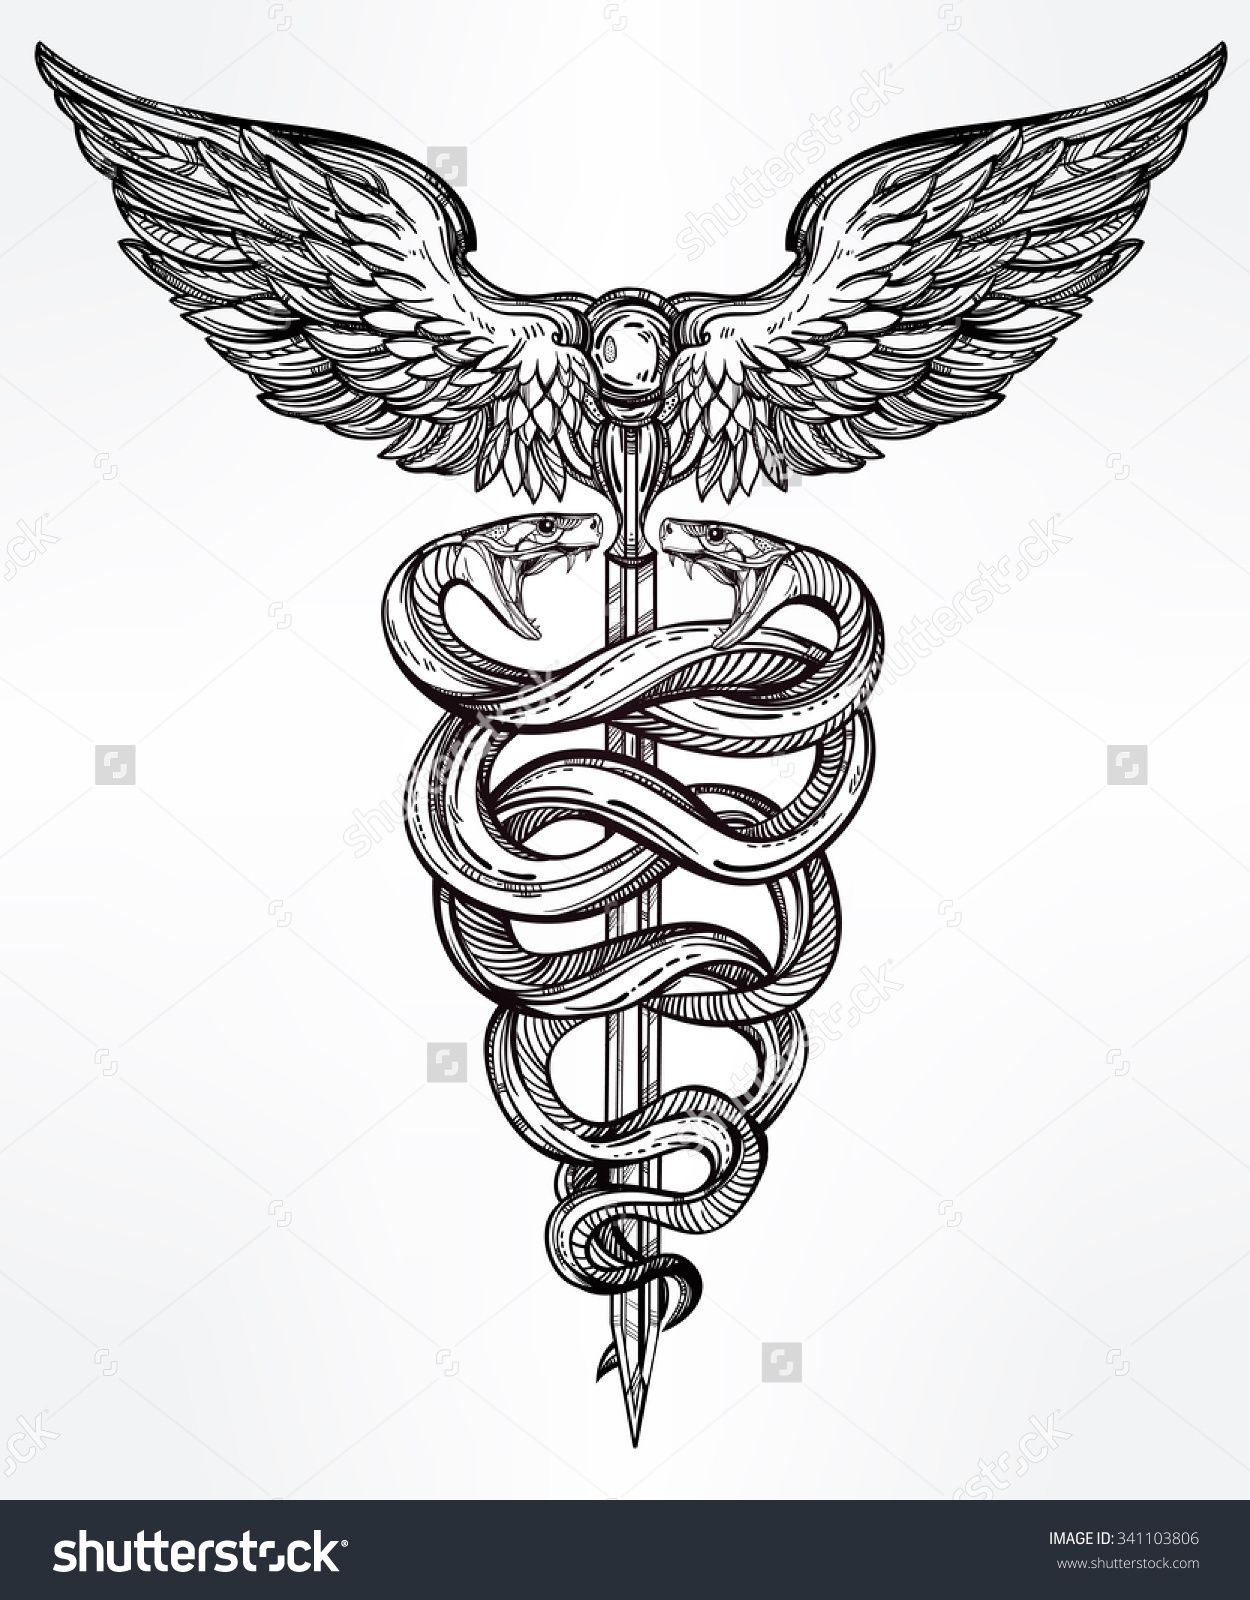 Caduceus symbol of god mercury highly detailed snakes wrapped caduceus symbol of god mercury highly detailed snakes wrapped around winged staff hand drawn vintage linear tattoo design dark romantic isolated vector buycottarizona Gallery